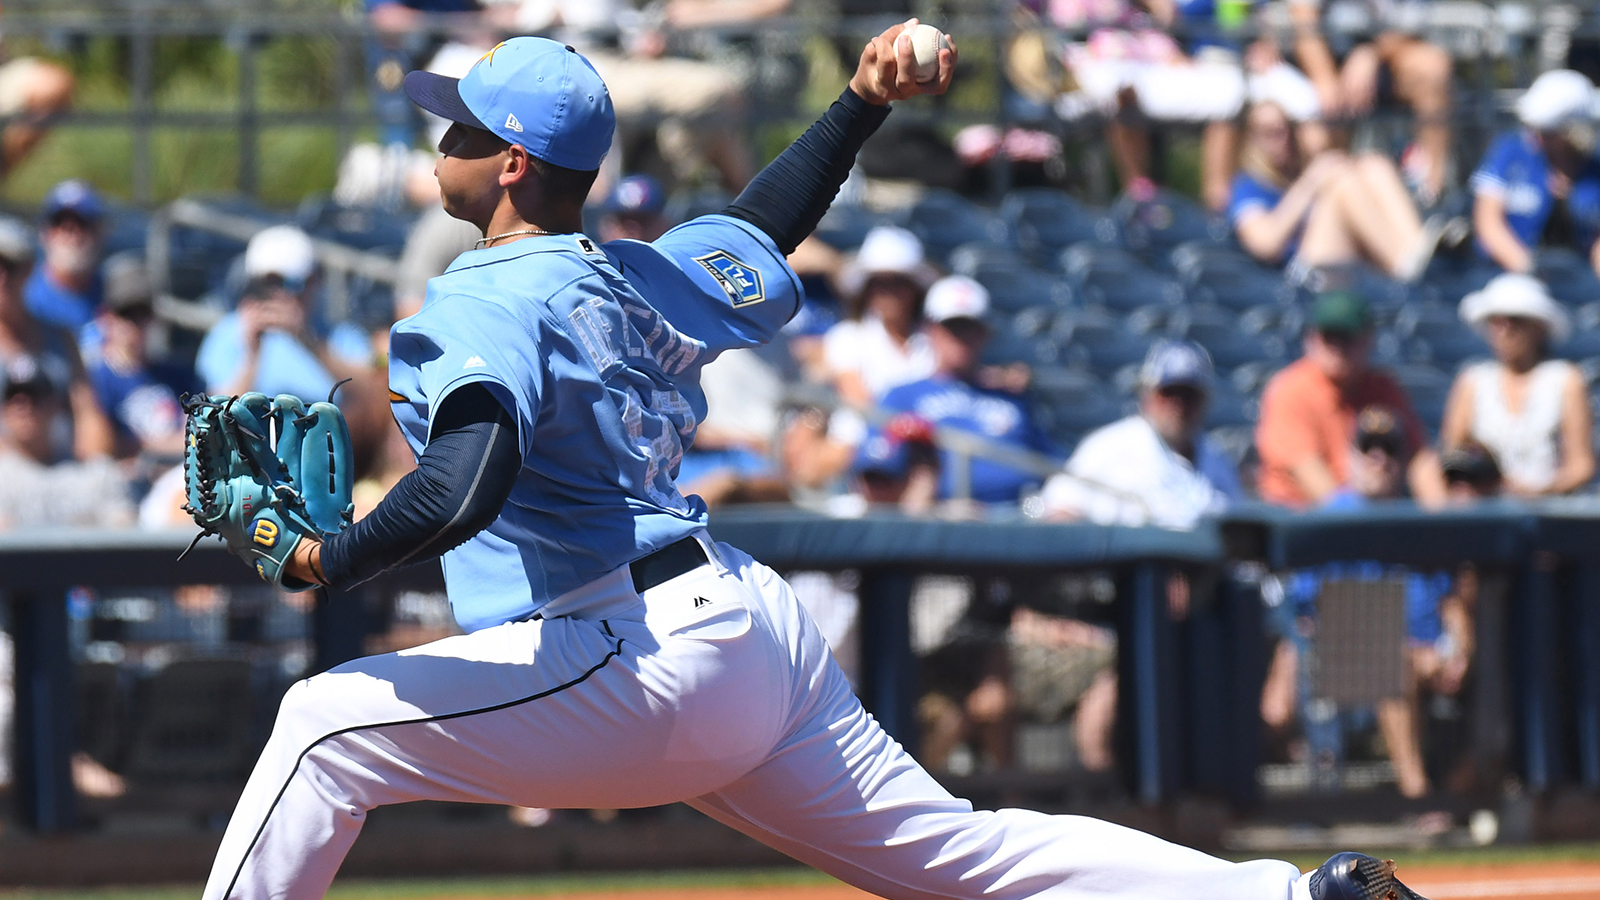 Rays pitching prospect Jose De Leon has torn UCL in right elbow